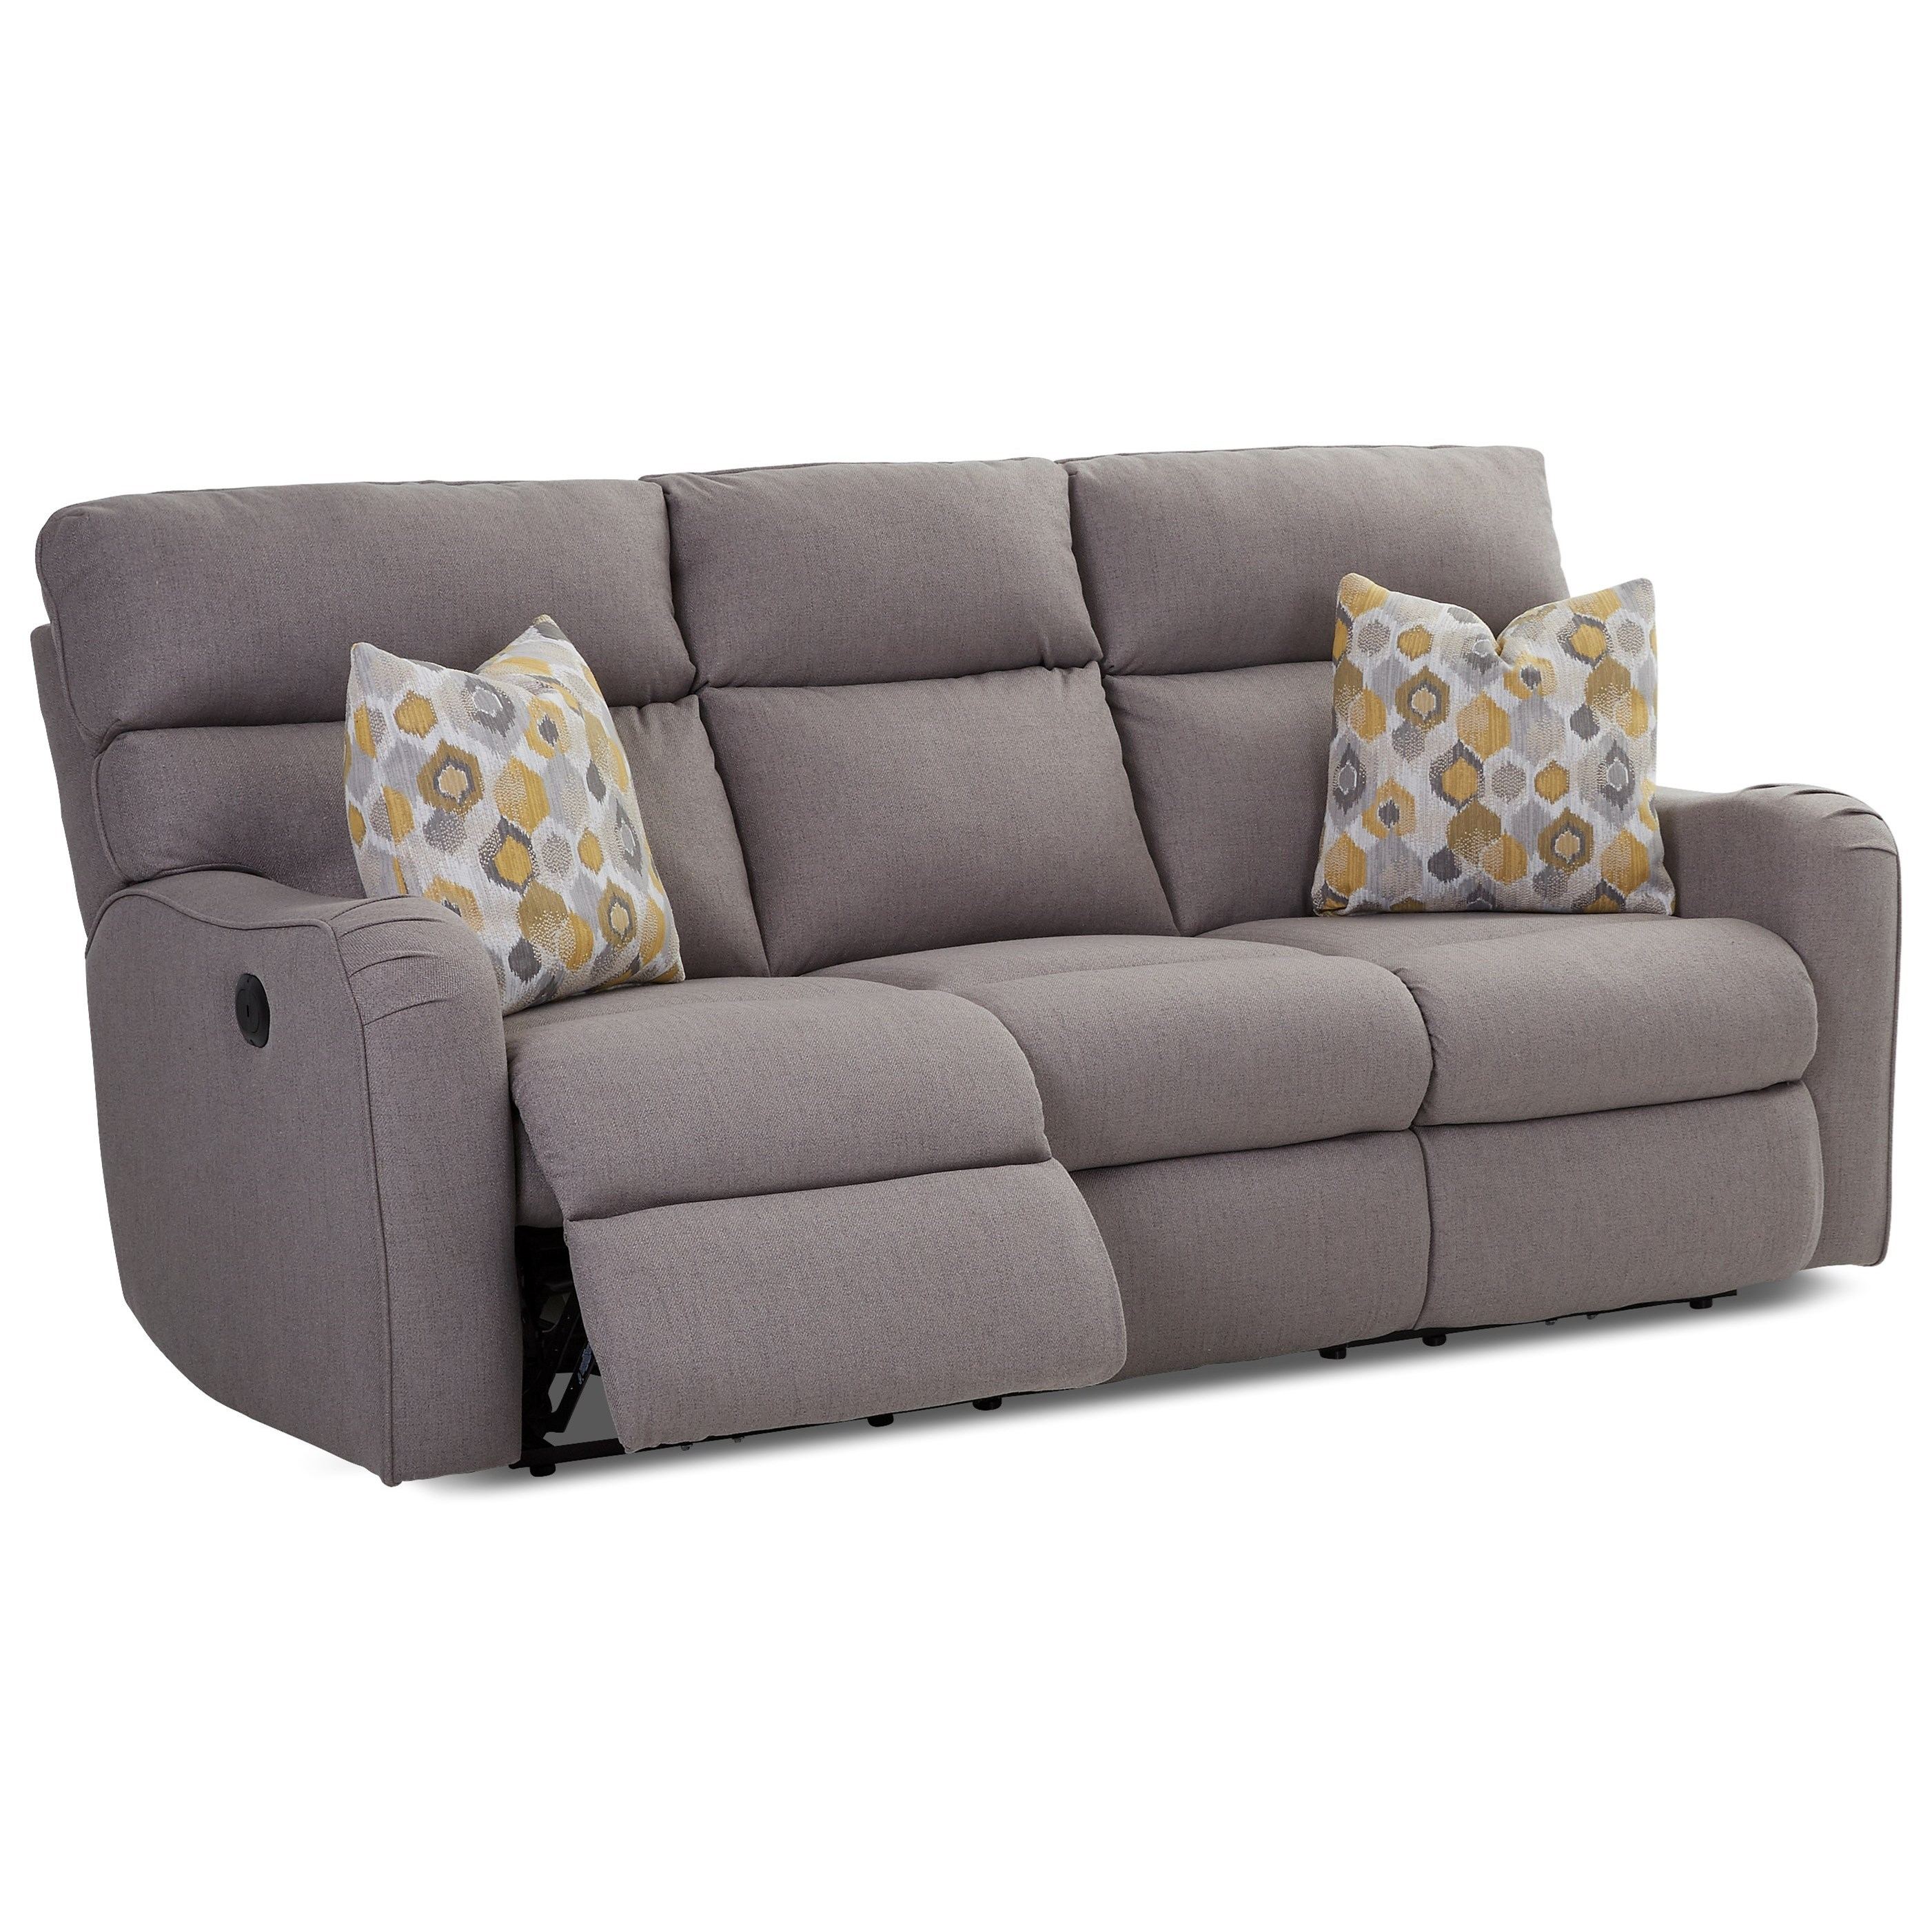 Reclining Sofa with Throw Pillows by Klaussner